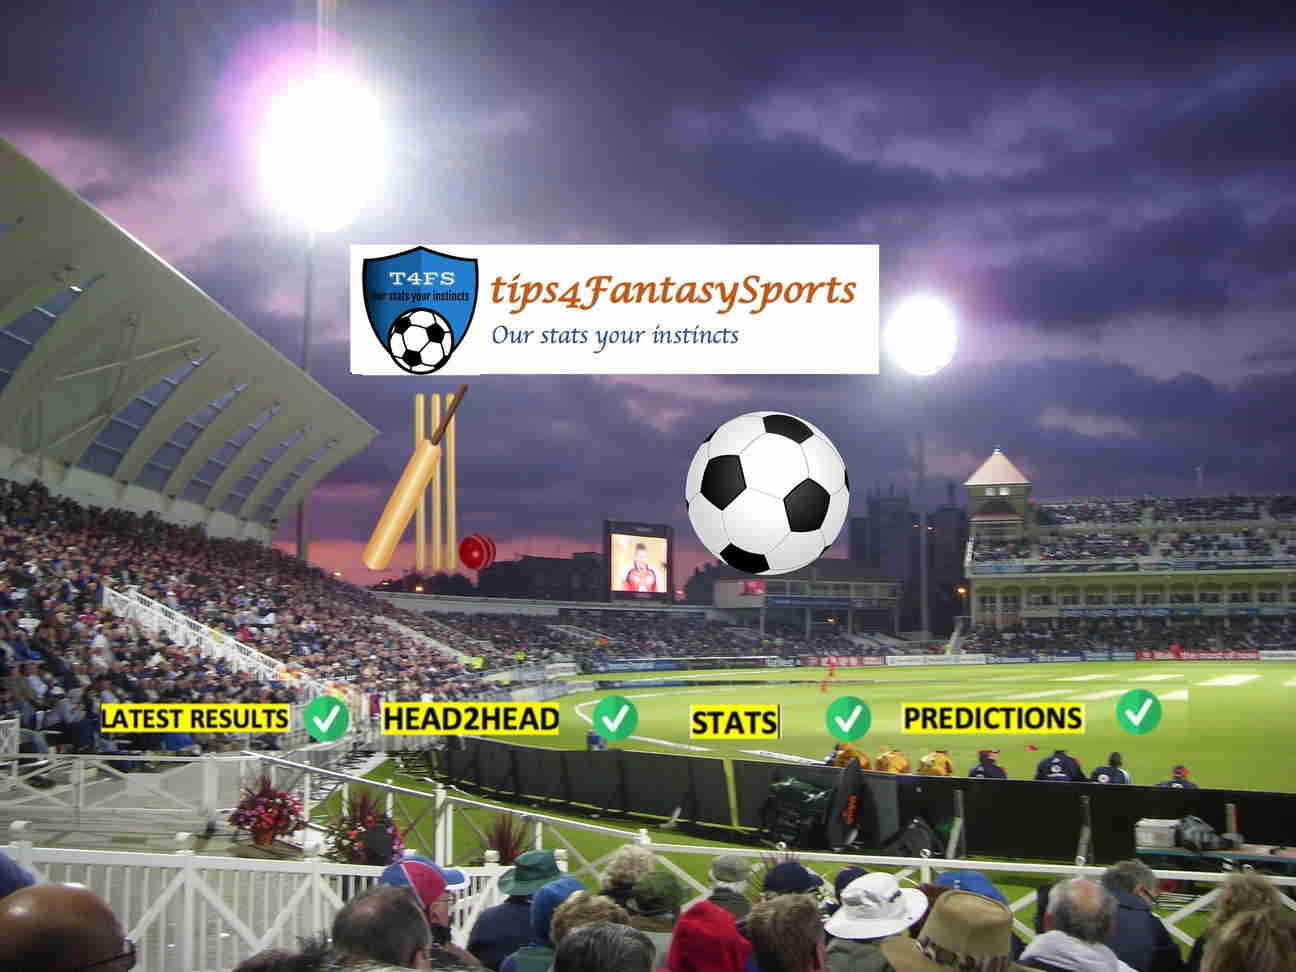 Heracles Vs Ado Den Haag Prediction H2h Stats Latest Results